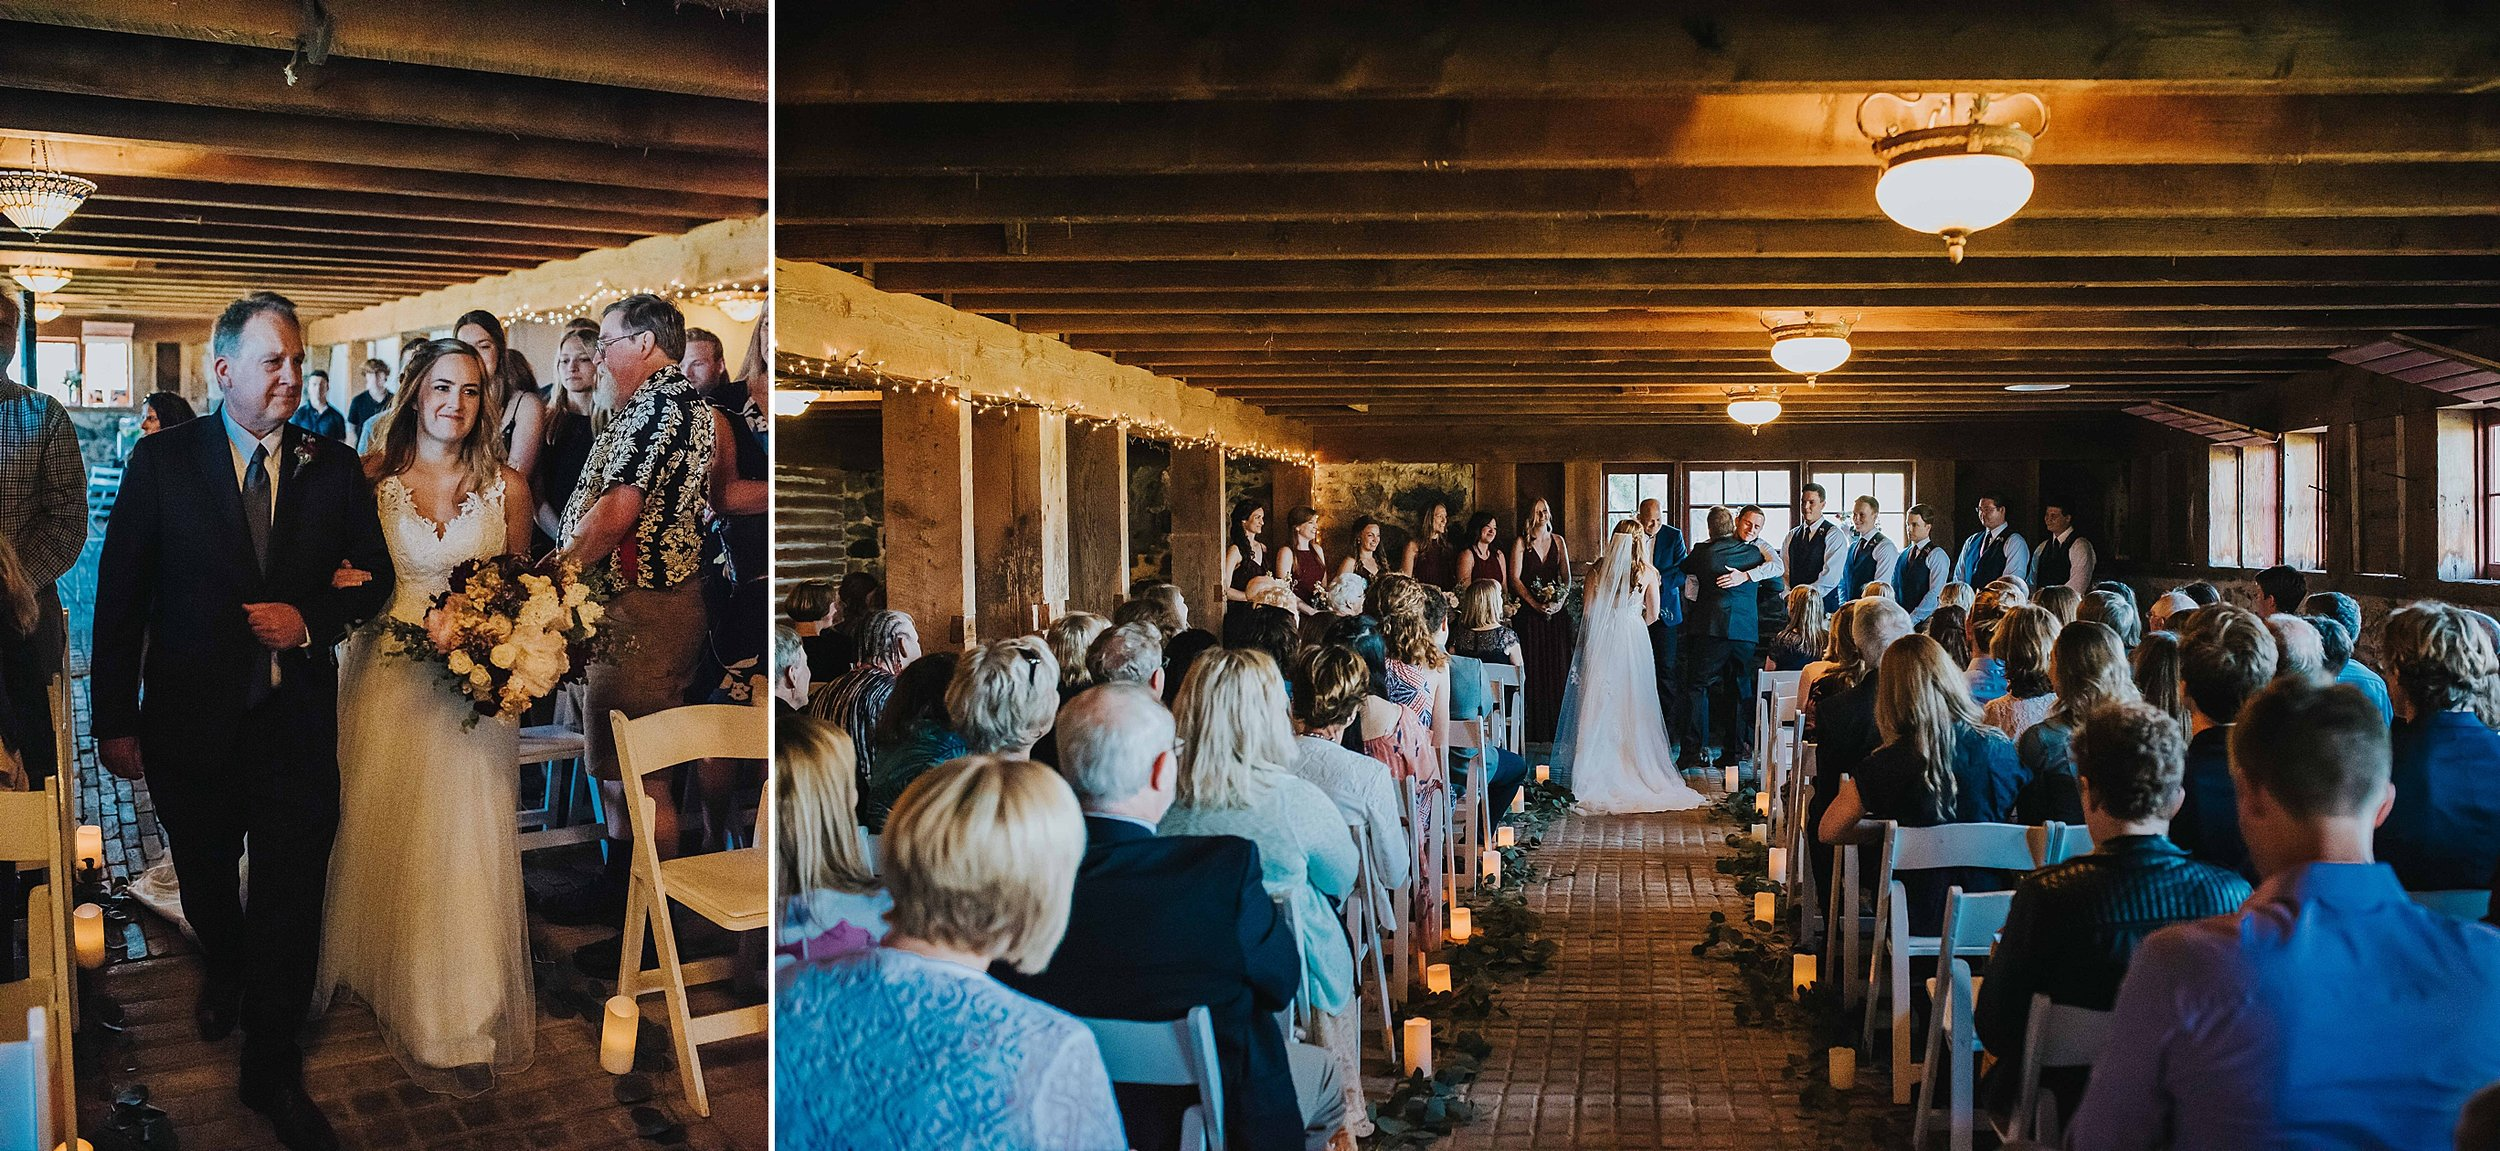 Crockett Farm-Wedding-photographer-J HODGES PHOTOGRAPHY_0294.jpg